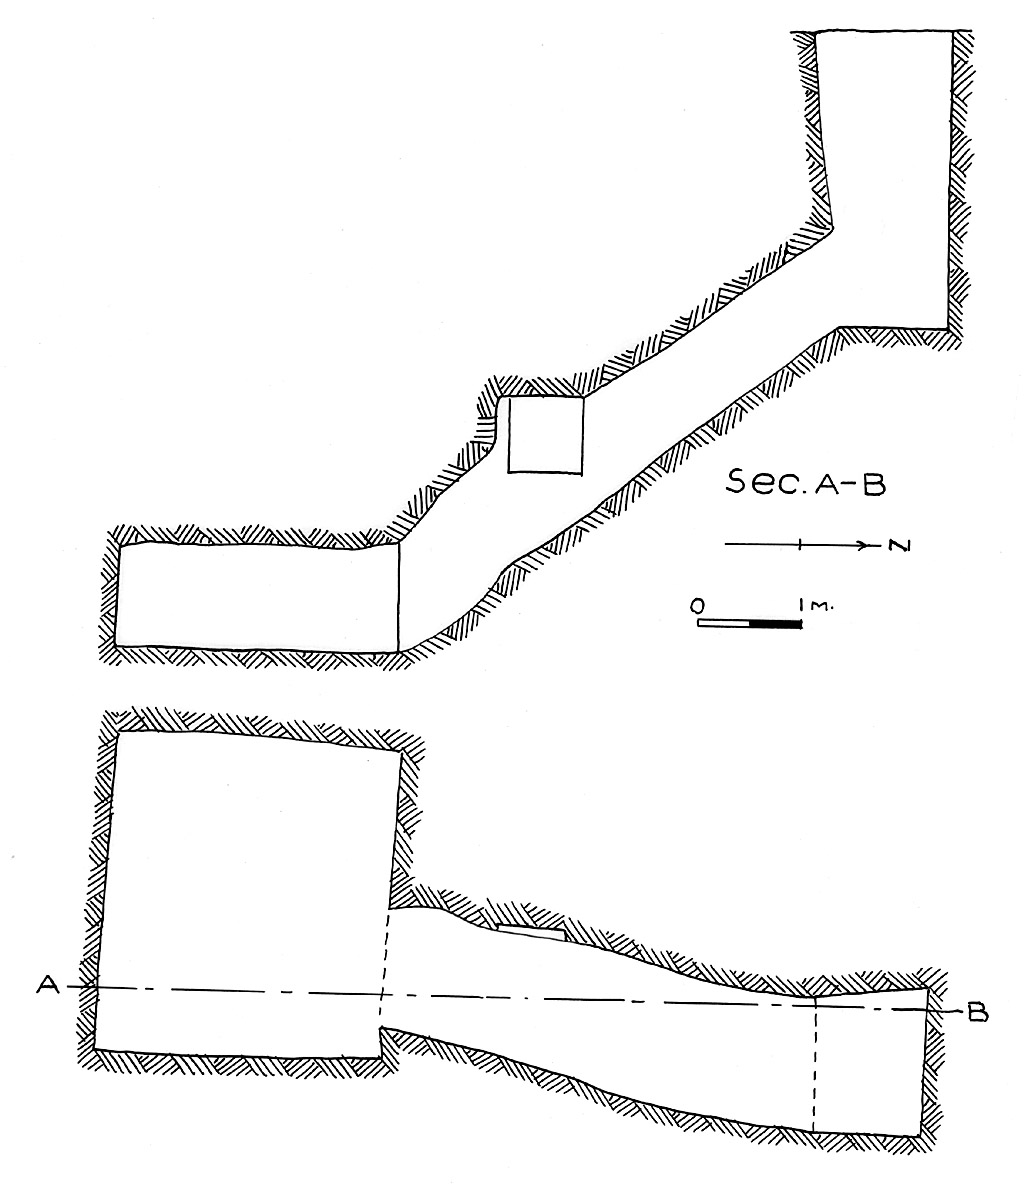 Maps and plans: G 7215, Shaft E